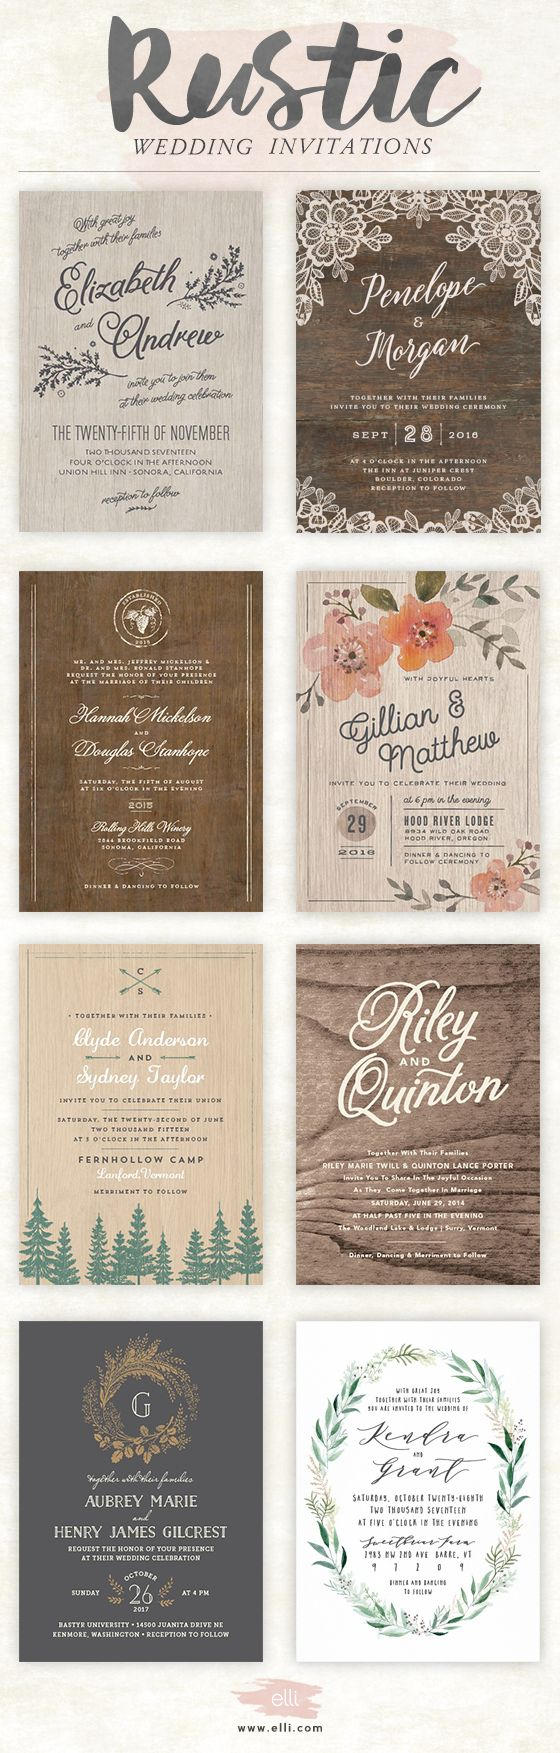 second wedding invitations wording%0A Find rustic wedding invitations at Elli com  Free customization and  unlimited proofs